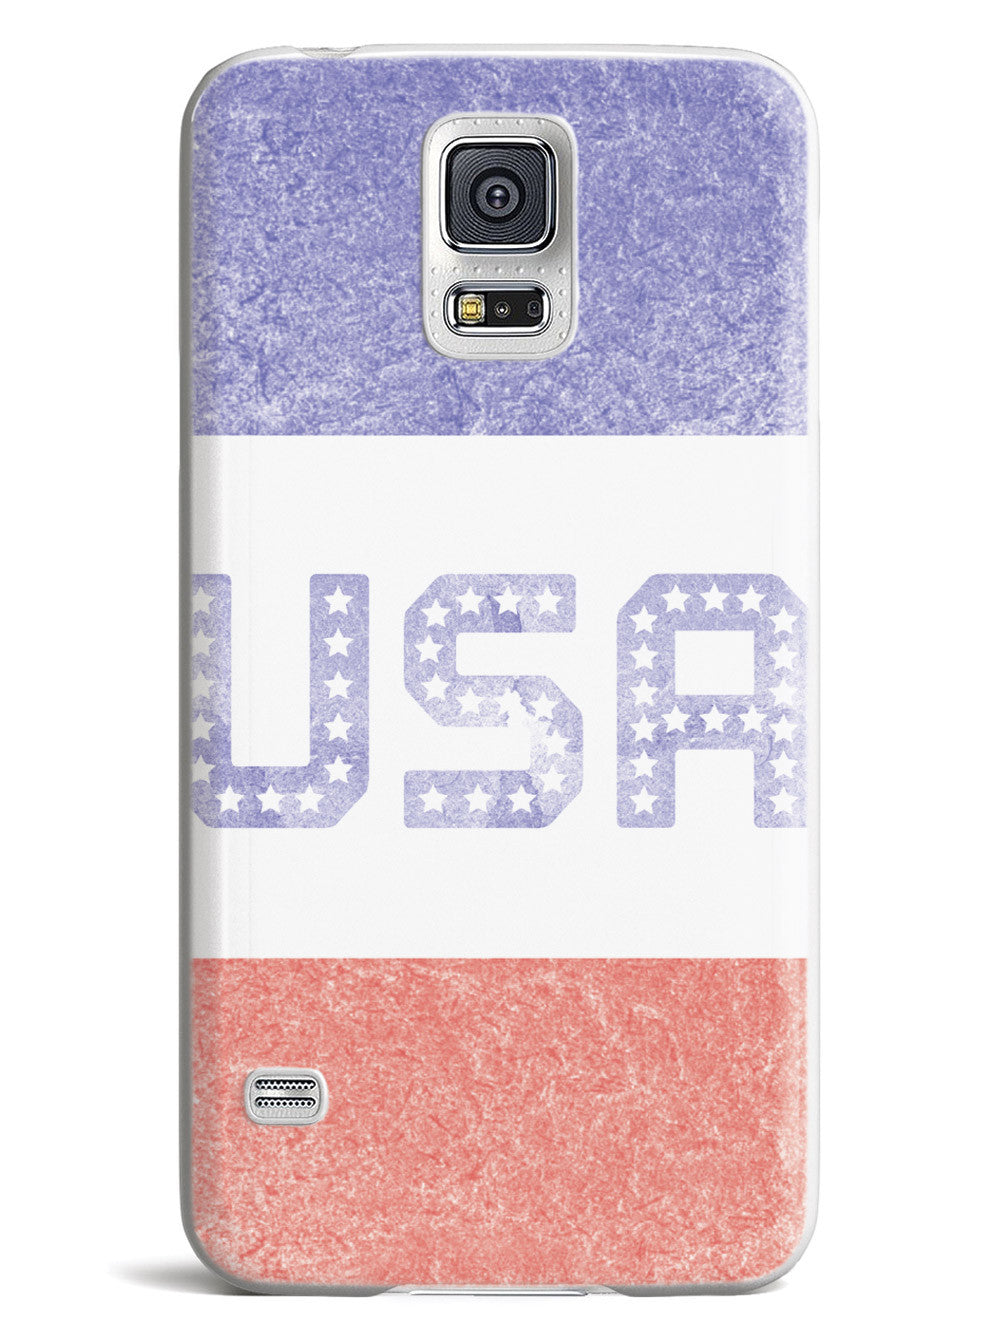 Team USA - Patriotic Case